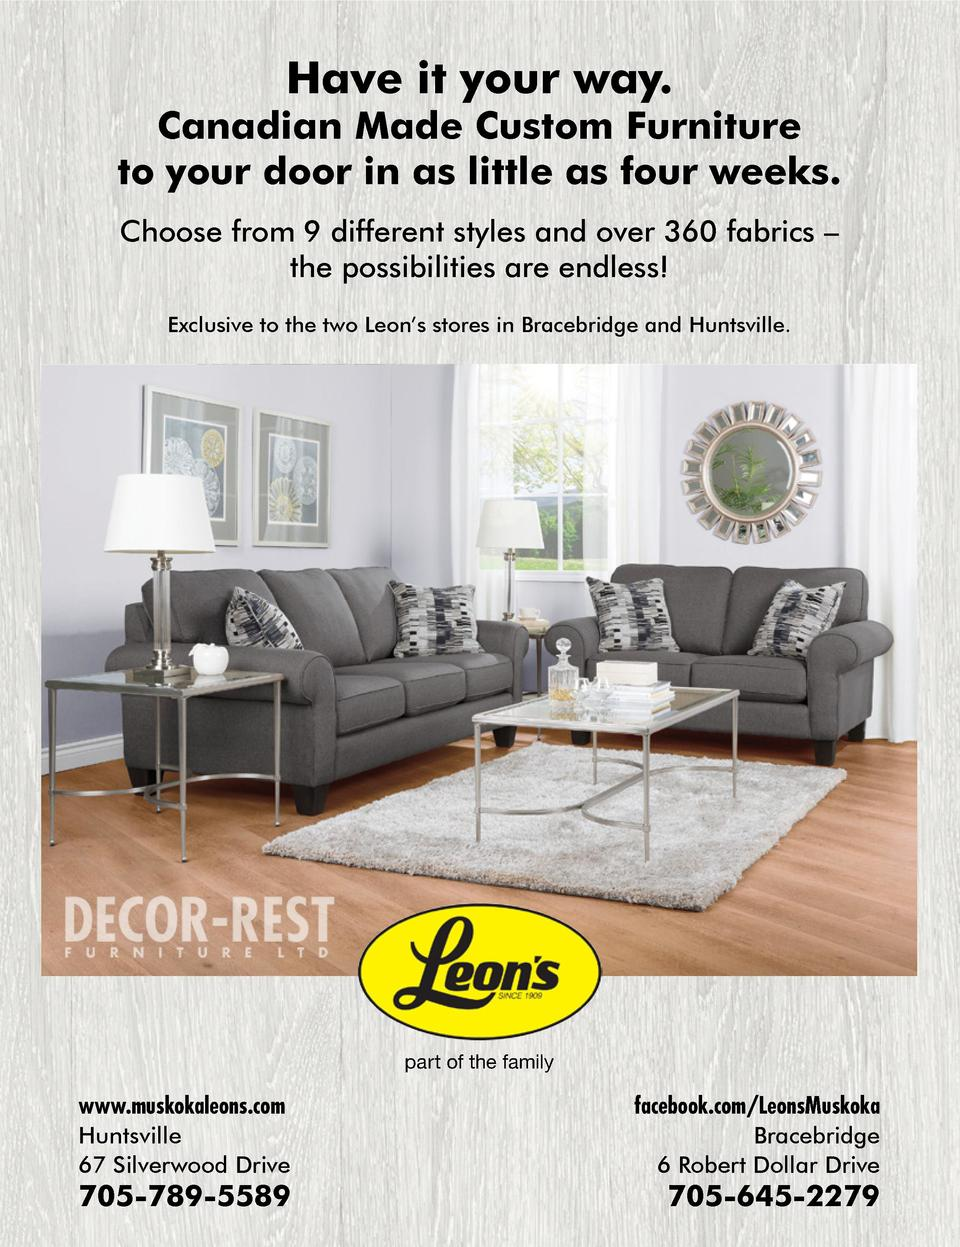 Have it your way.  Canadian Made Custom Furniture to your door in as little as four weeks. Choose from 9 different styles ...